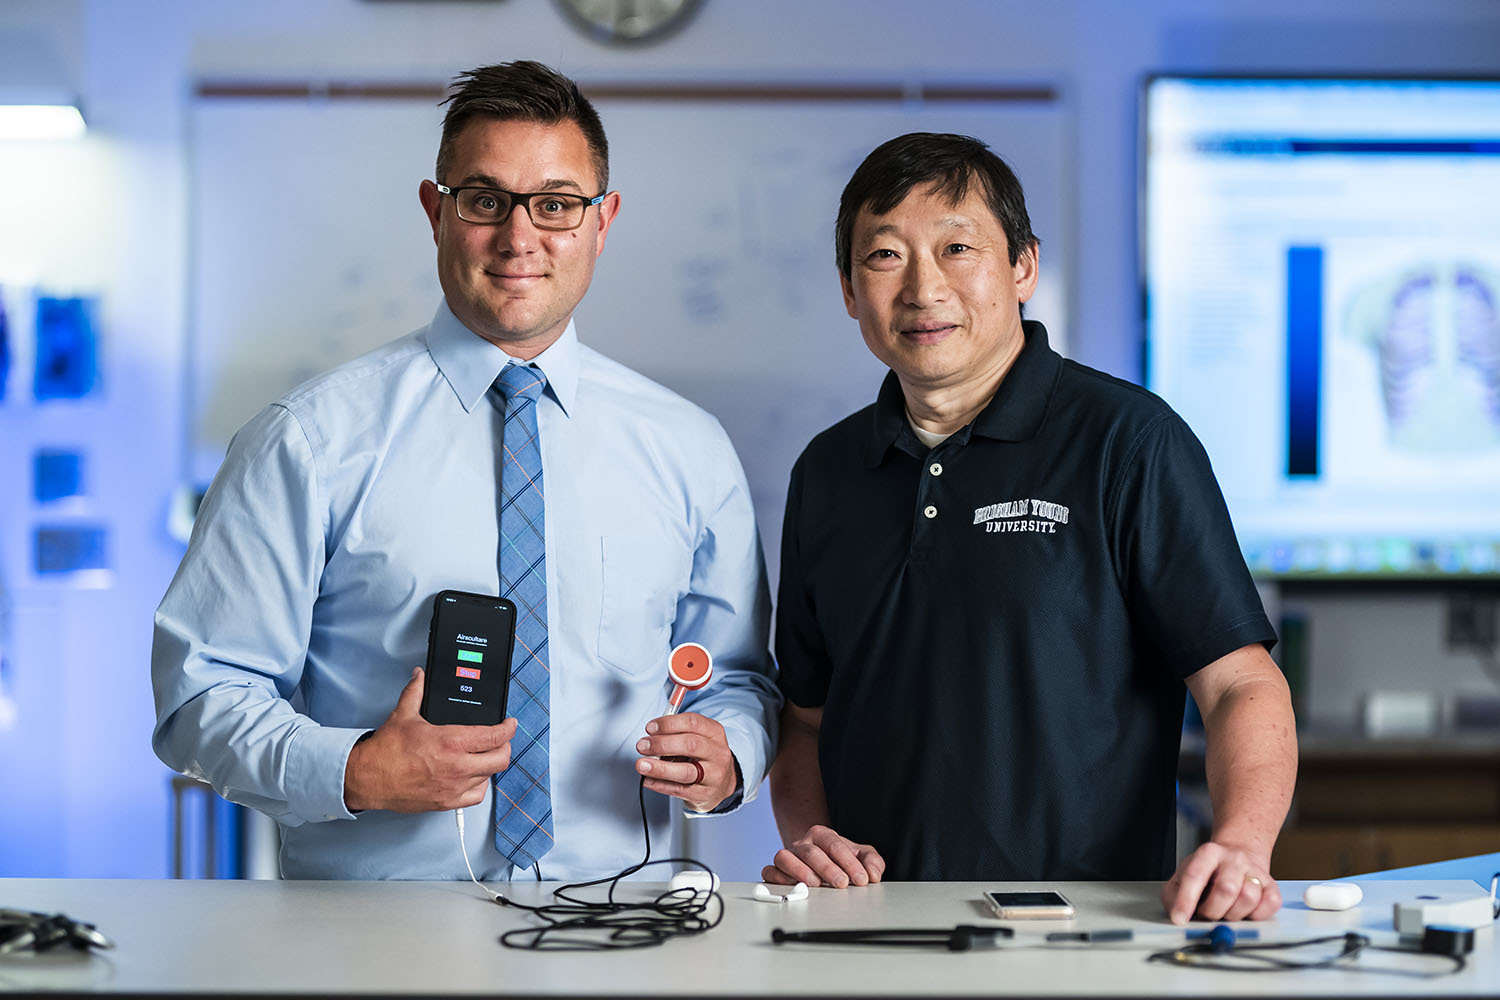 Drs. Craig Nuttall and Chia-Chi Teng demonstrate their Bluetooth, 3D-printed stethoscope.